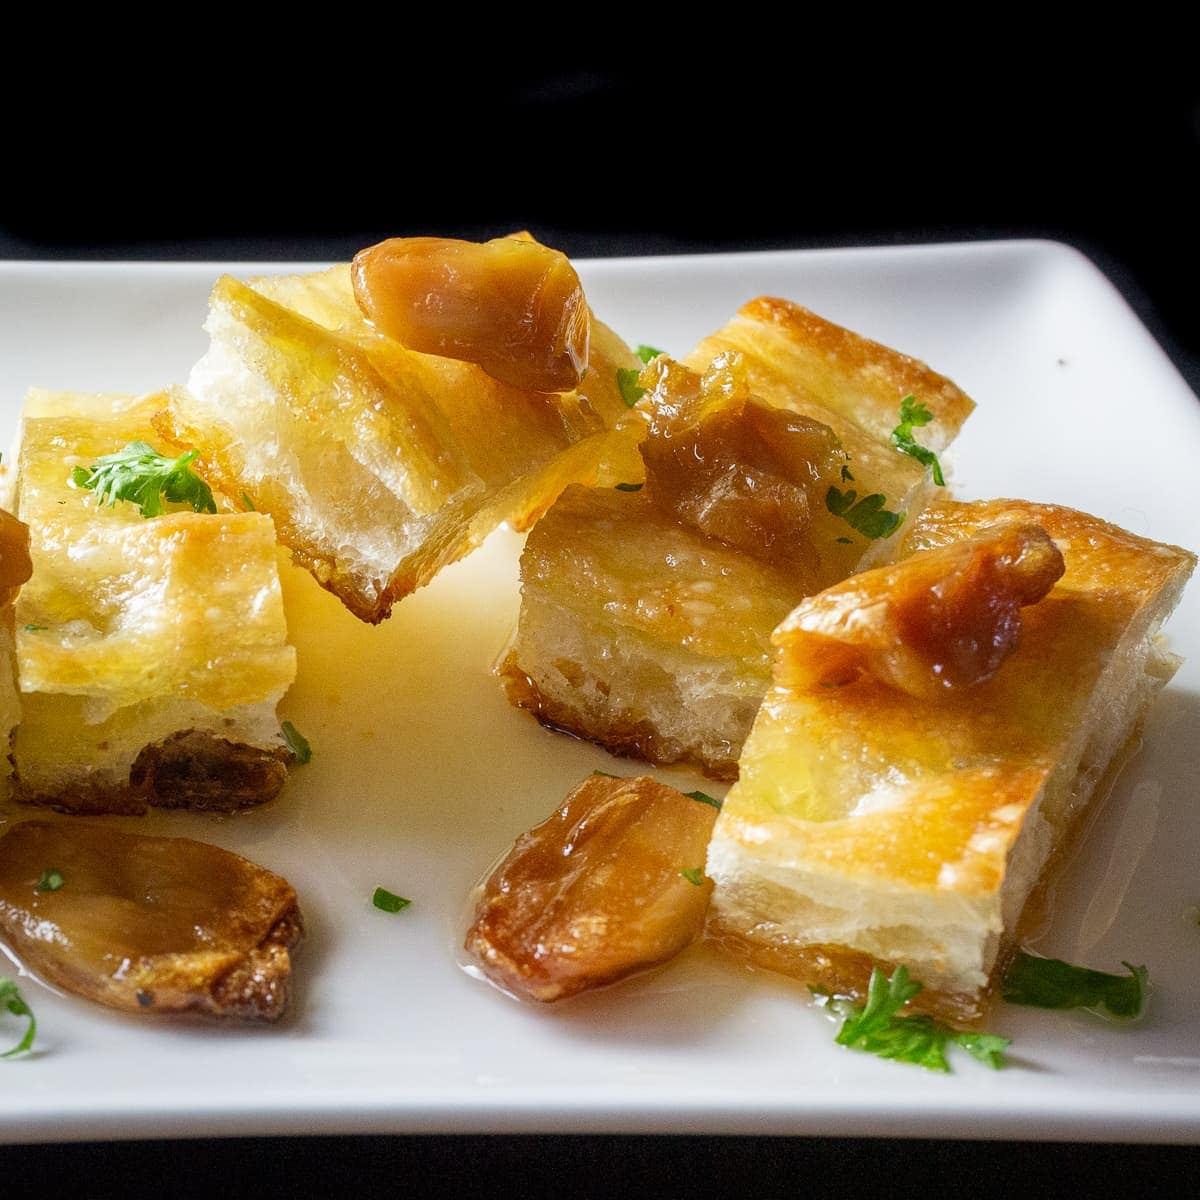 roasted garlic with focaccia